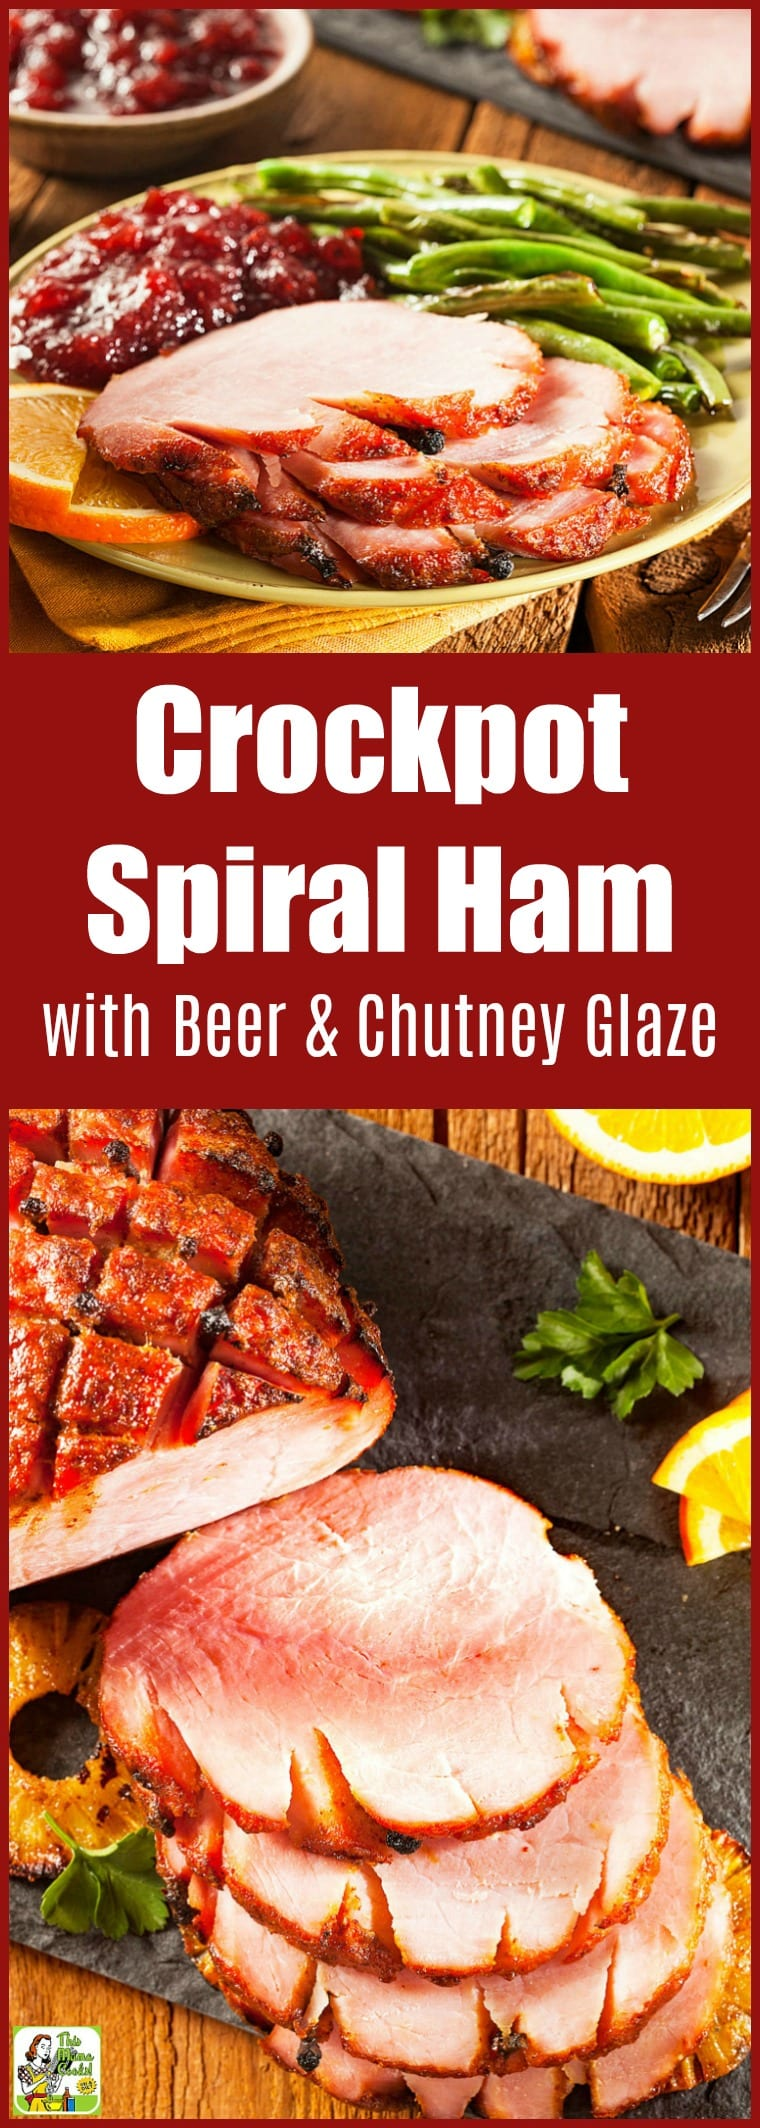 Try this Crockpot Spiral Ham with Beer and Chutney Glaze for the holidays. Making a slow cooker ham recipe is a great way to free up your oven during big cooking holidays like Easter, Thanksgiving, and Christmas. This easy dinner recipe is naturally gluten free and makes plenty of leftovers. #ham #slowcooker #slowcookerrecipes #crockpot #crockpotrecipes